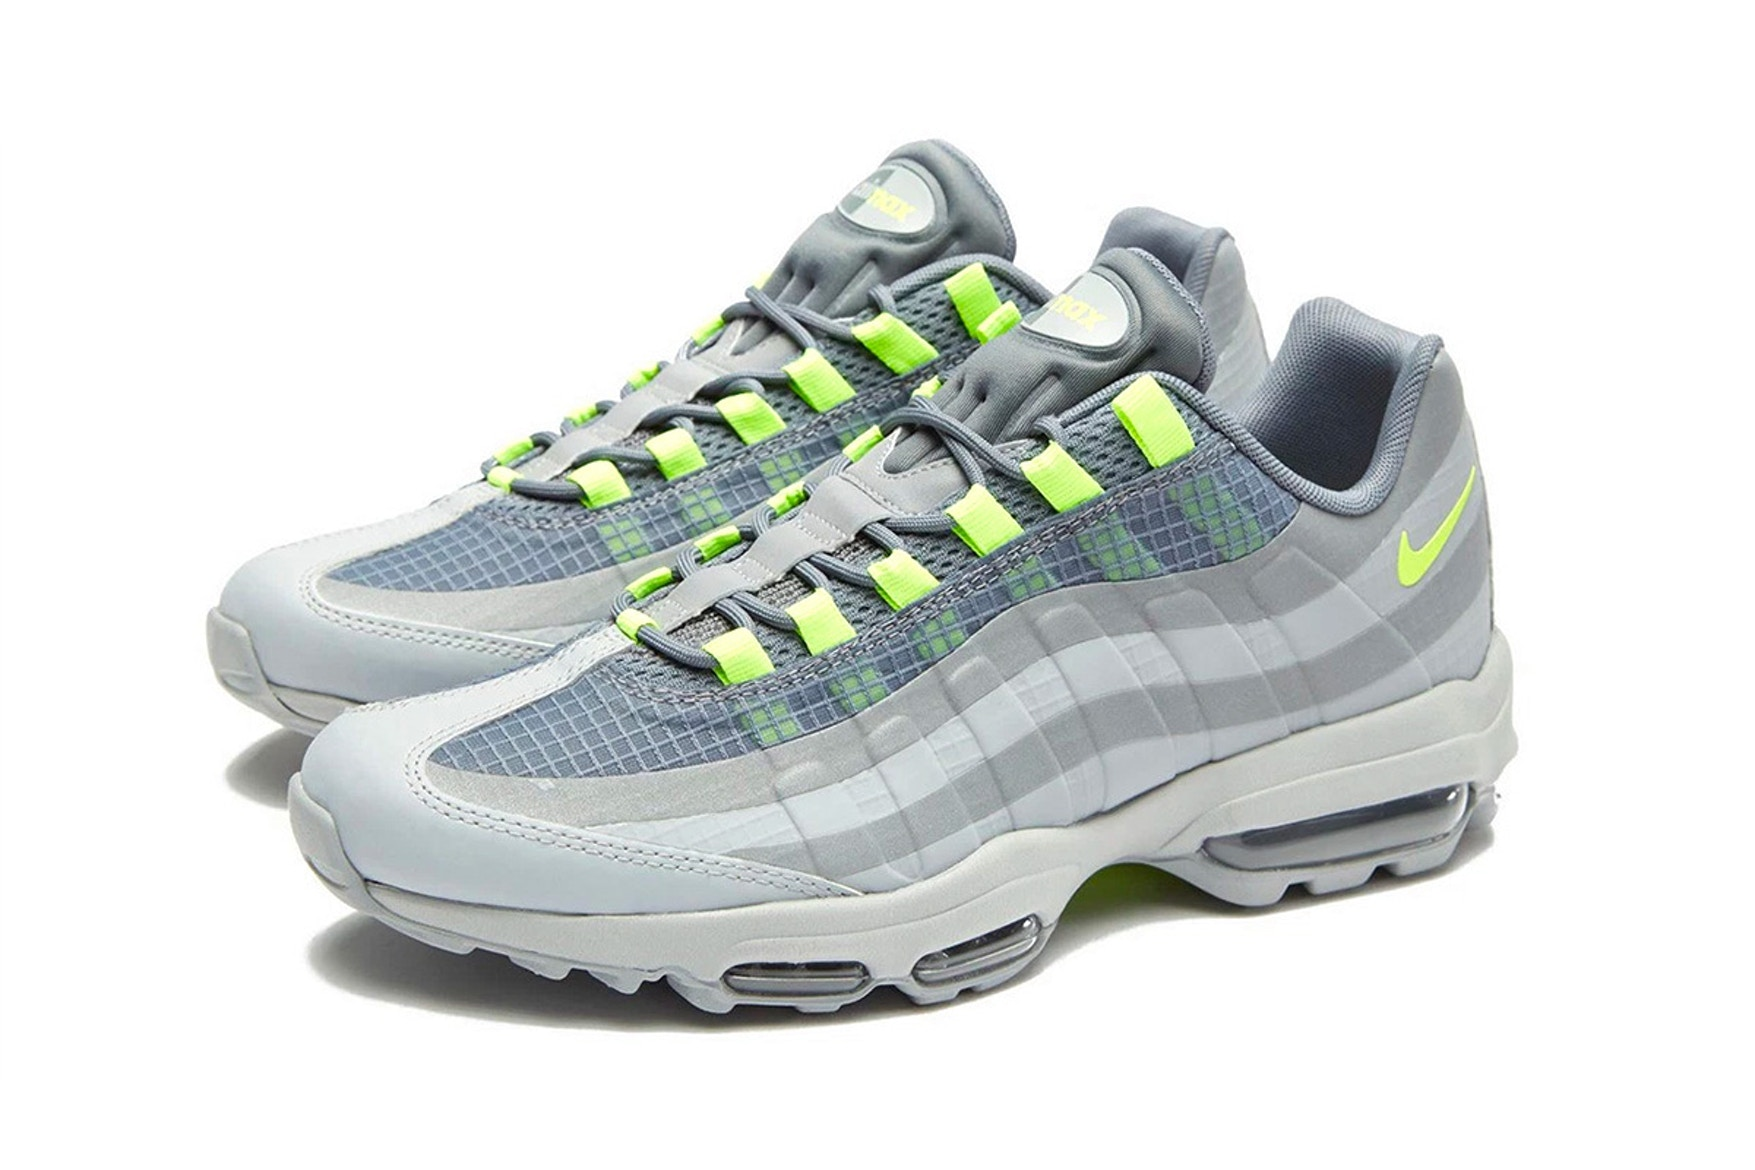 nike-air-max-95-ultra-se-new-colorways-release-02